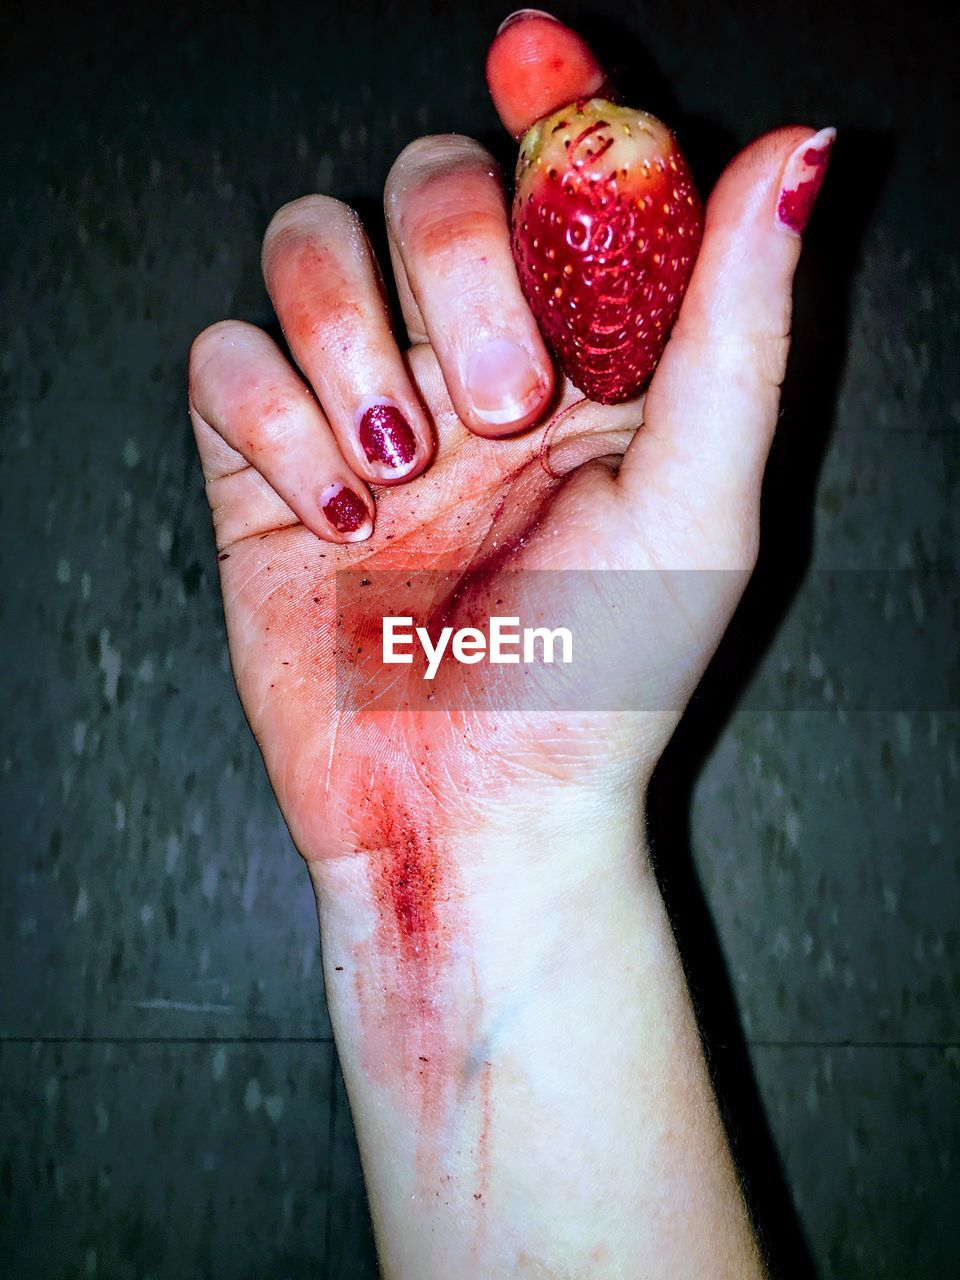 Close-Up Of Bloody Hand Holding Strawberry Against Wall